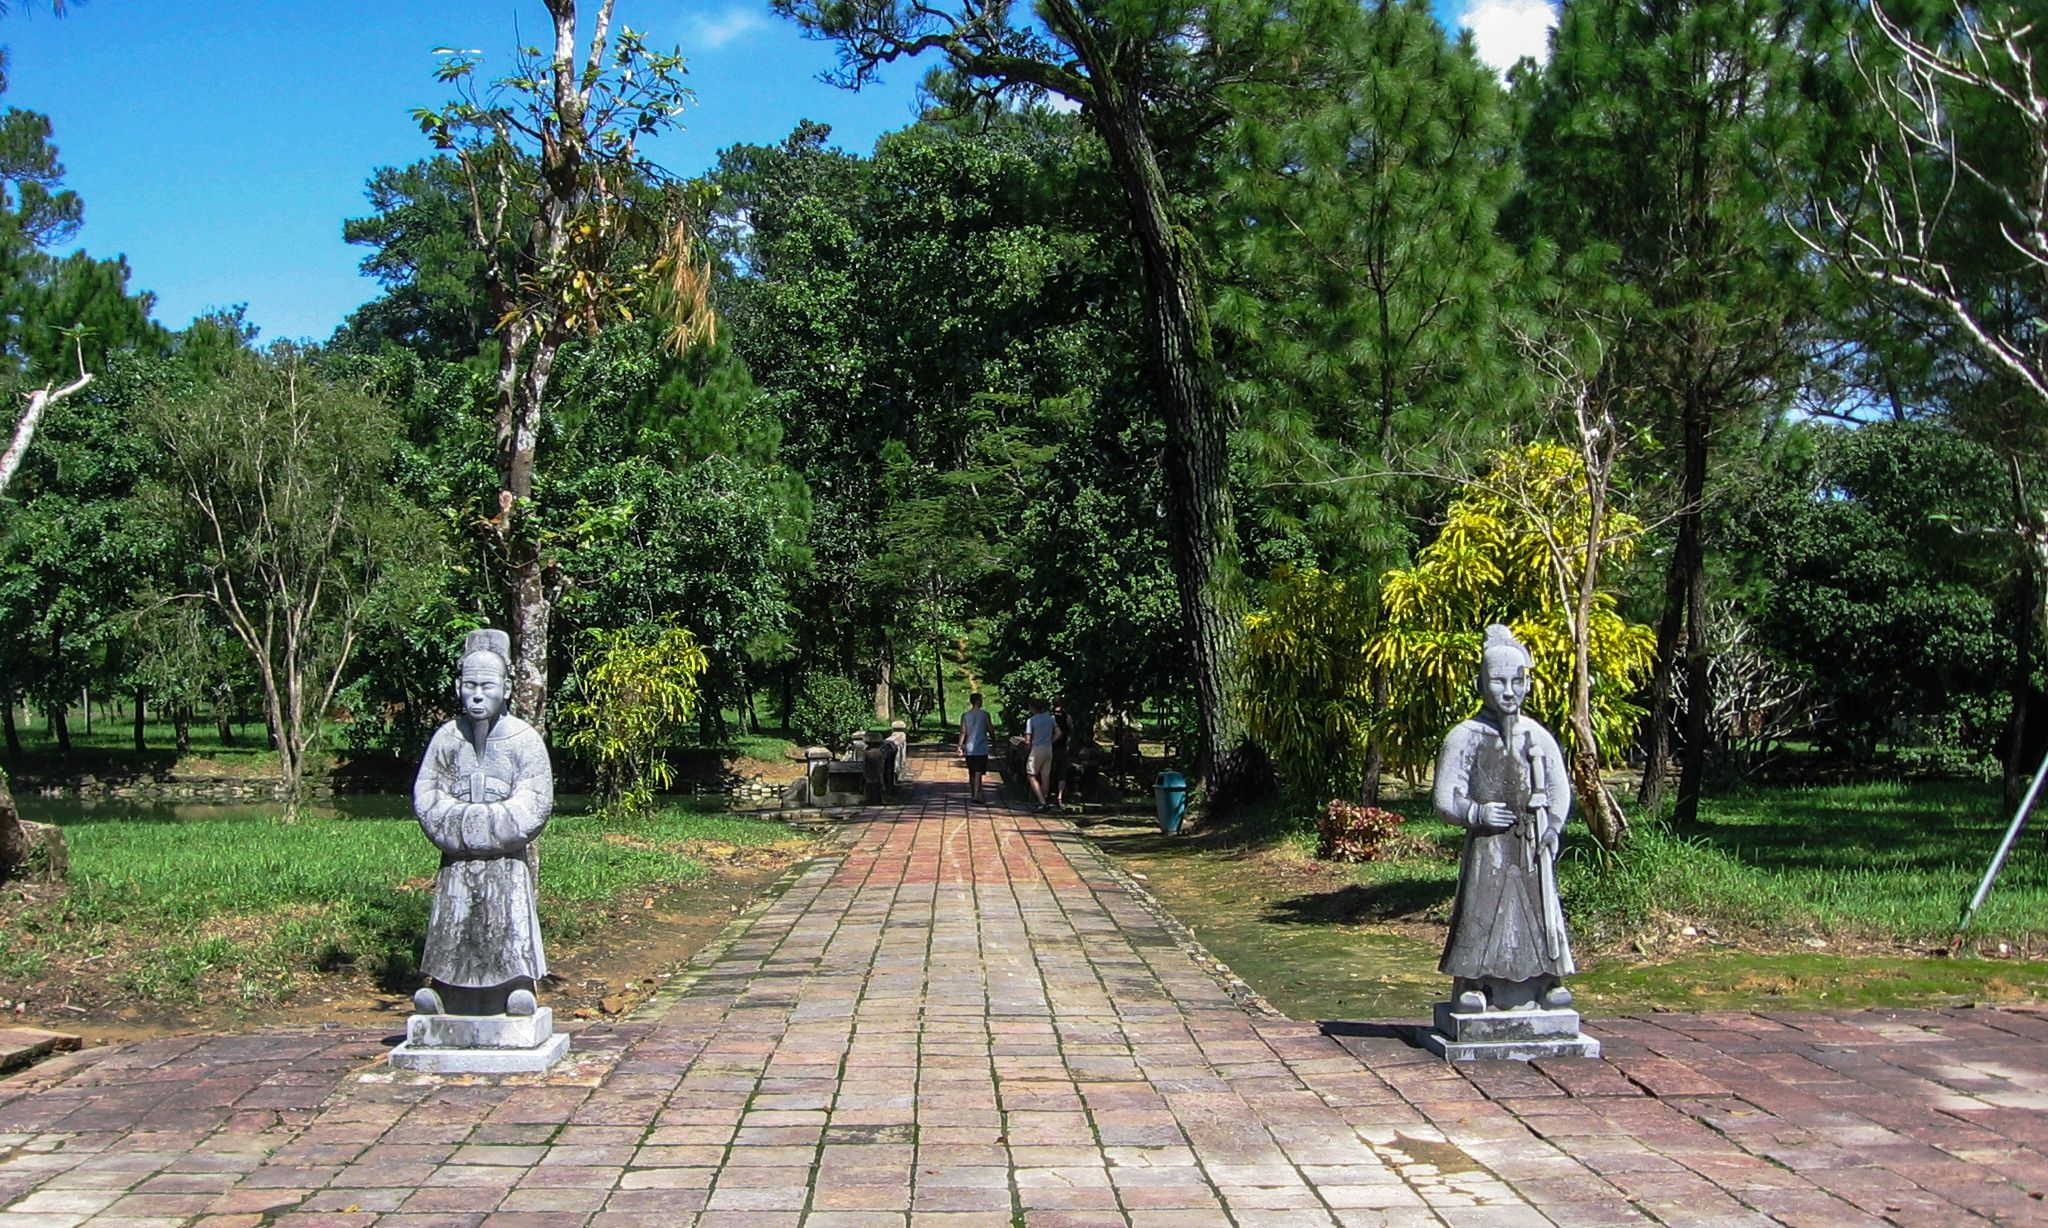 Courtiers flanking footpath in Minh Mang Royal Tomb, Hue, Vietnam